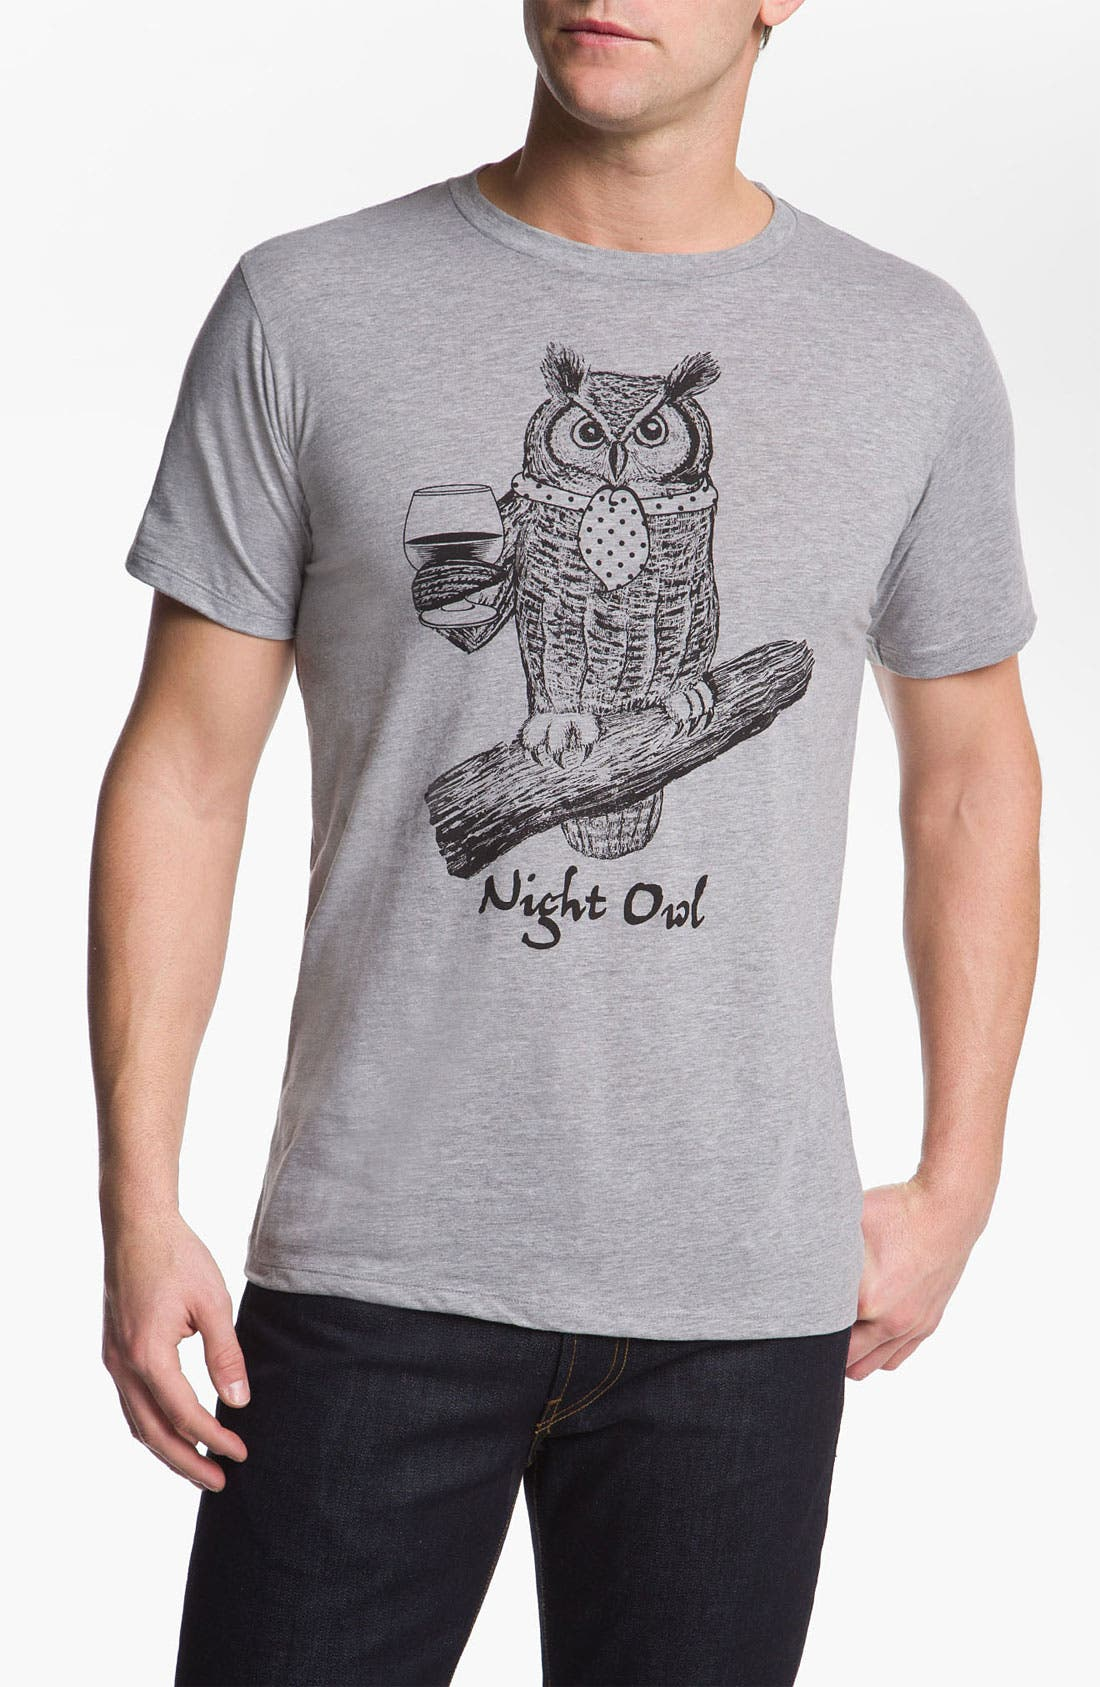 Alternate Image 1 Selected - Headline Shirts 'Night Owl' Graphic T-Shirt